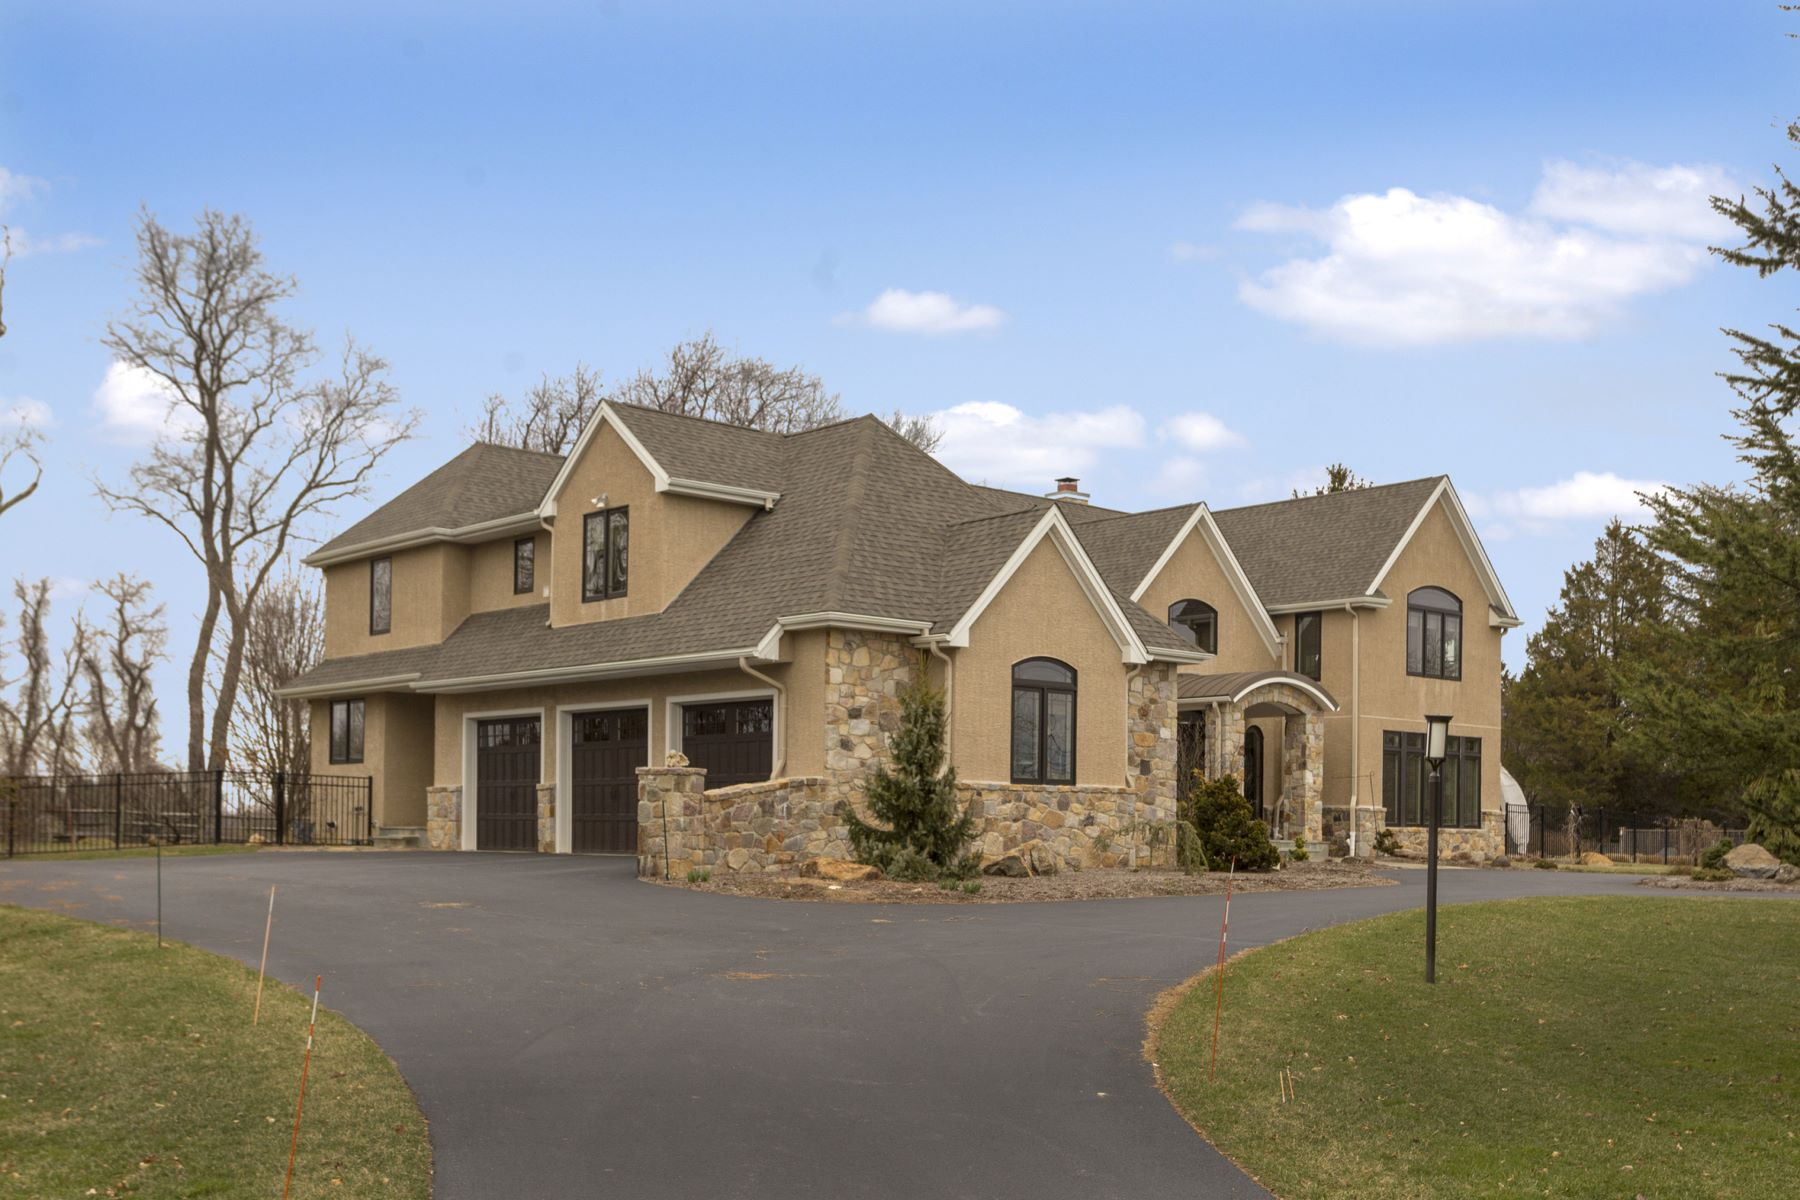 Single Family Home for Sale at 7 Carnation Ln West Chester, Pennsylvania 19382 United States